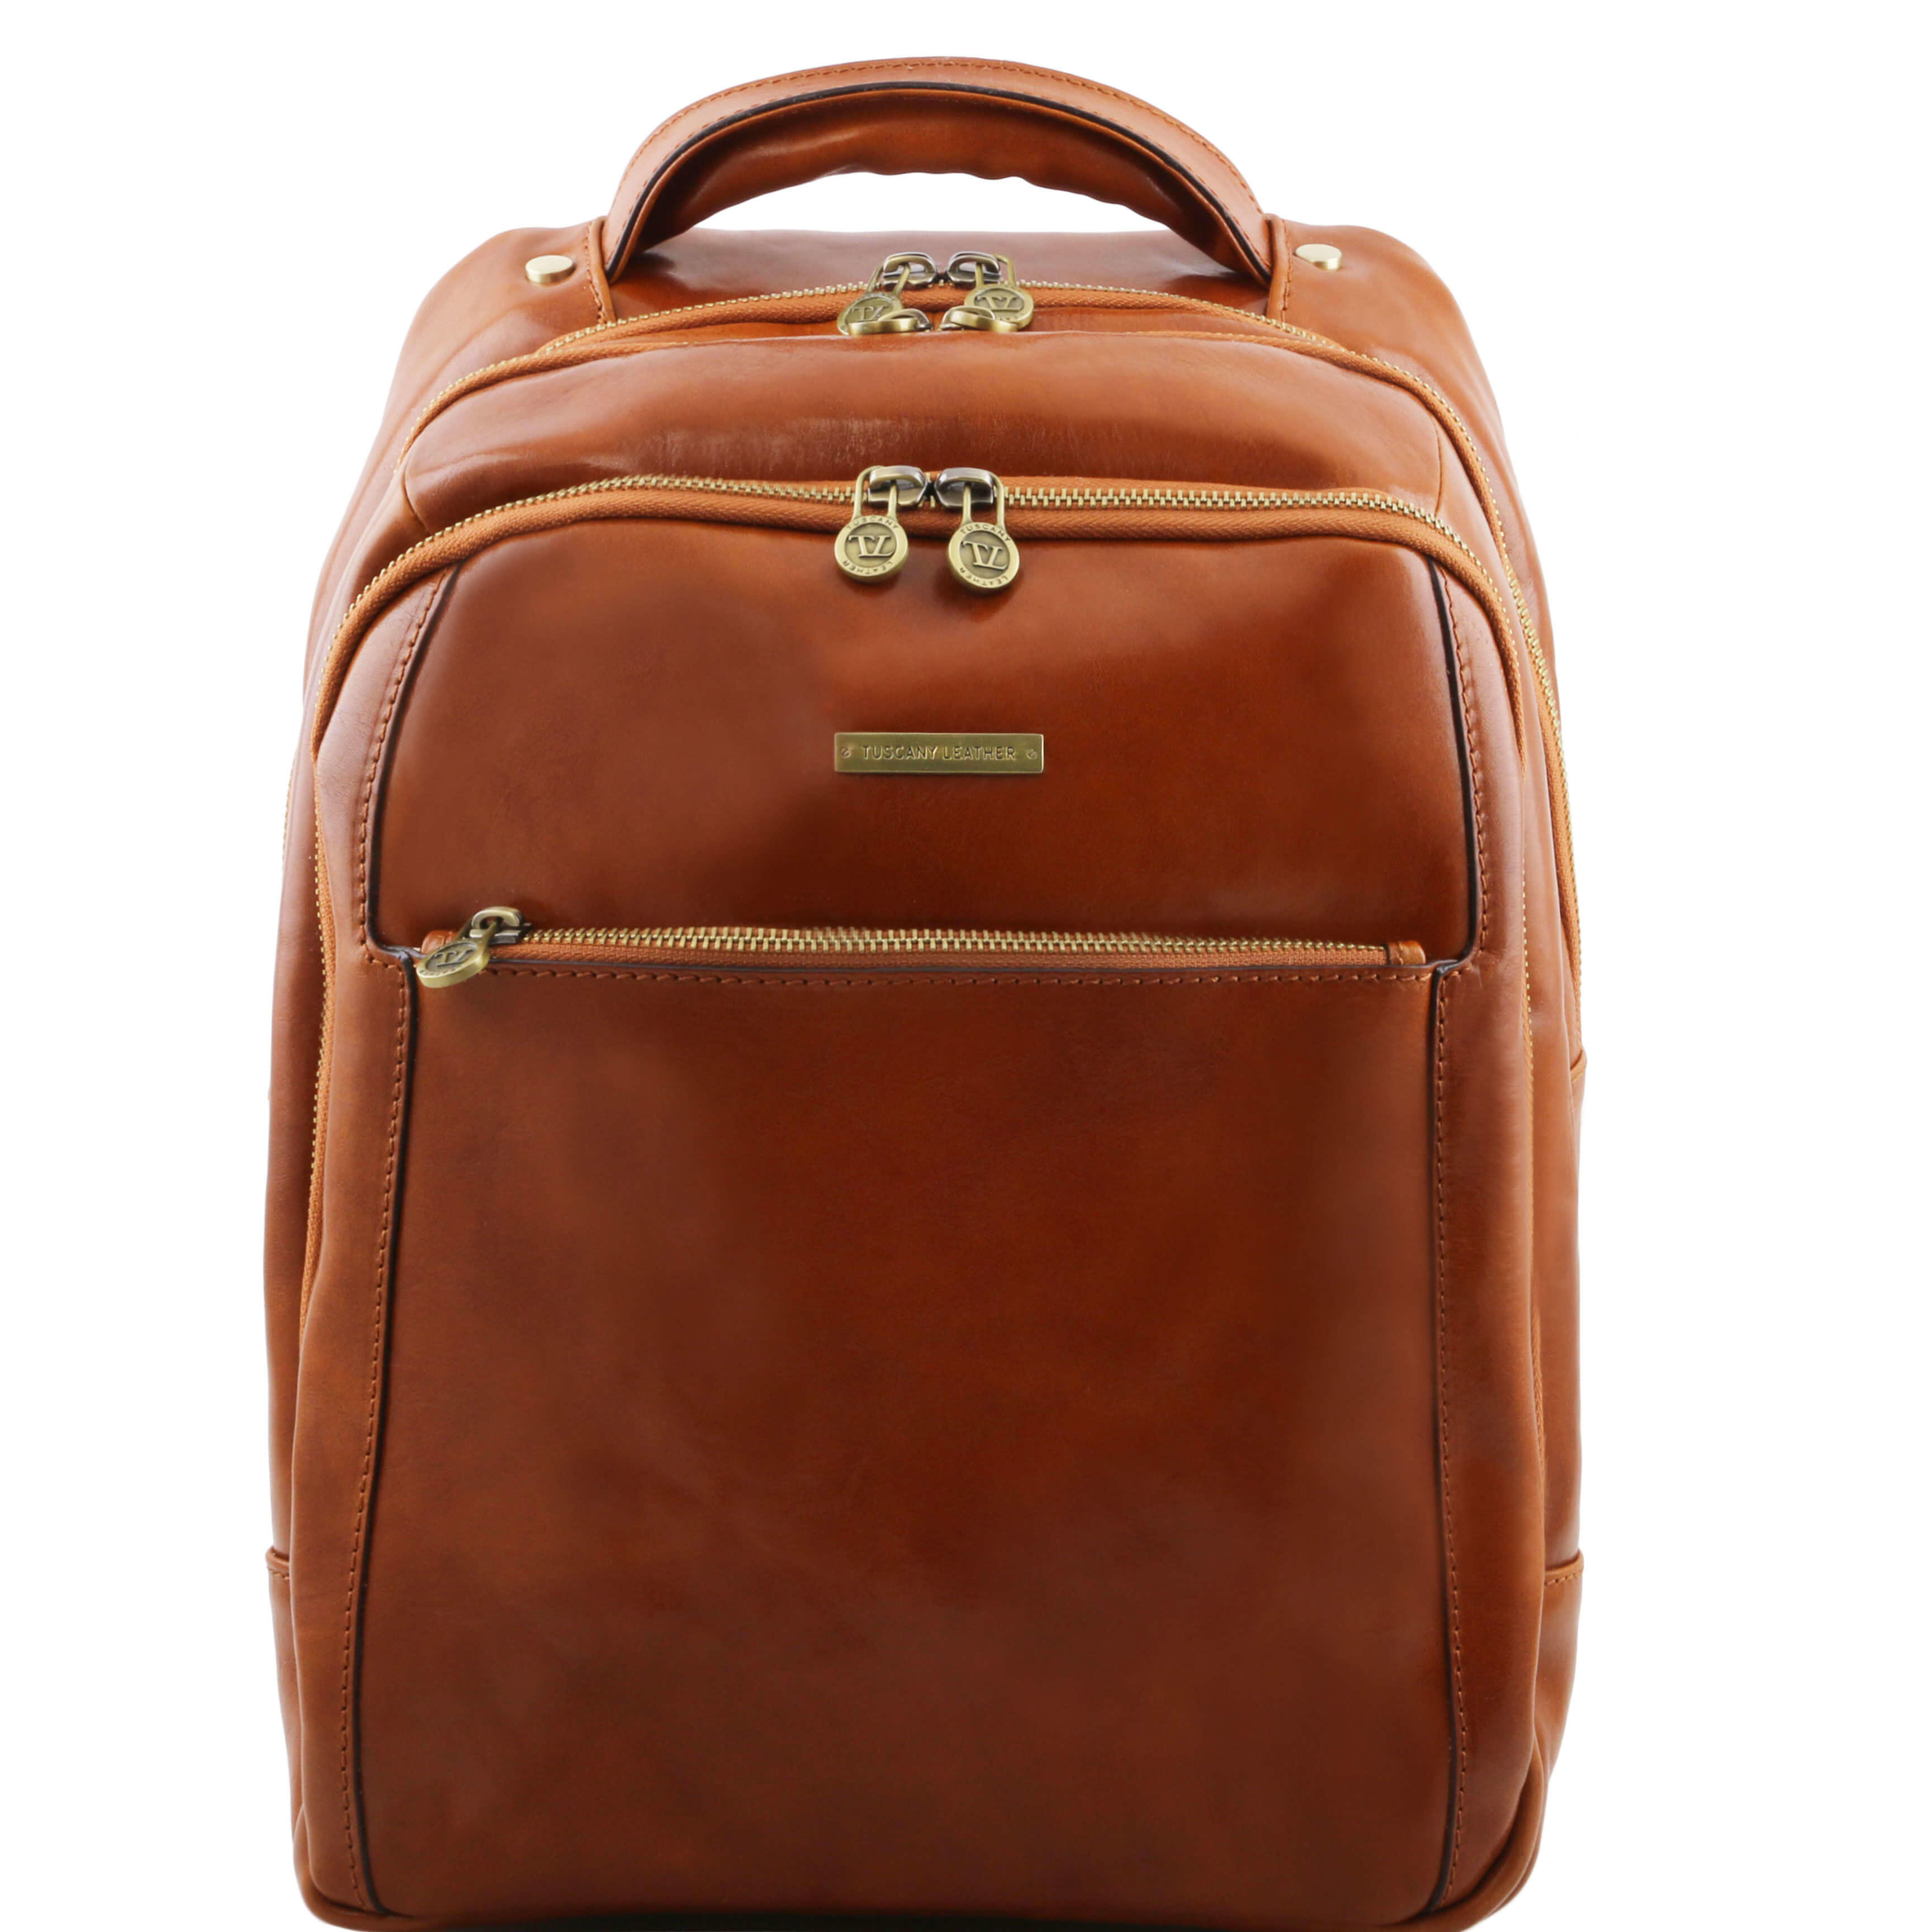 TL141402 Phuket Leather Backpack-Rucksack-Holdall-Bag 3 Compartments in Honey